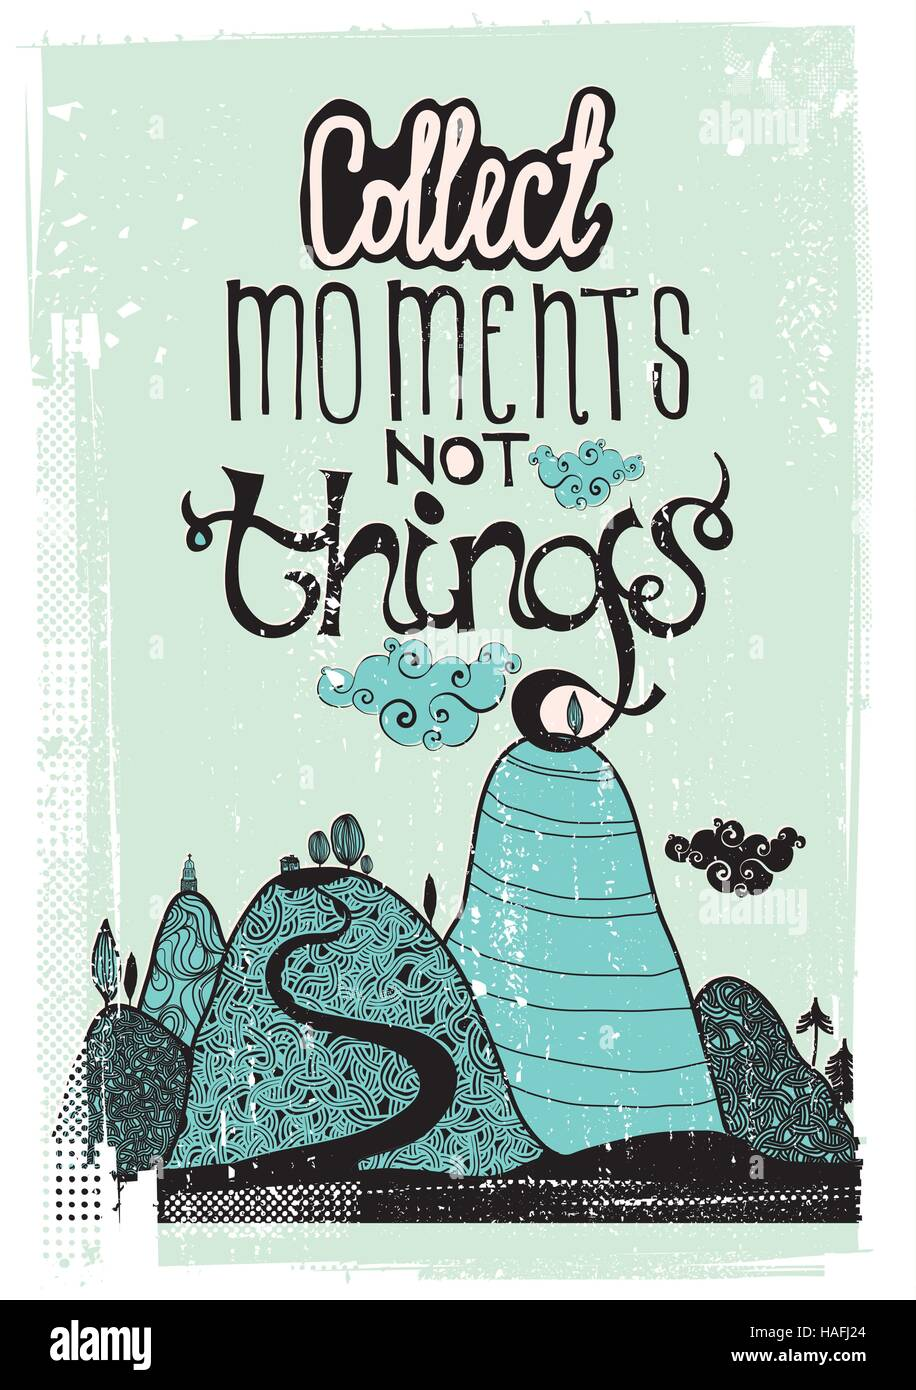 Motivational poster. Collect moment not things - Stock Vector